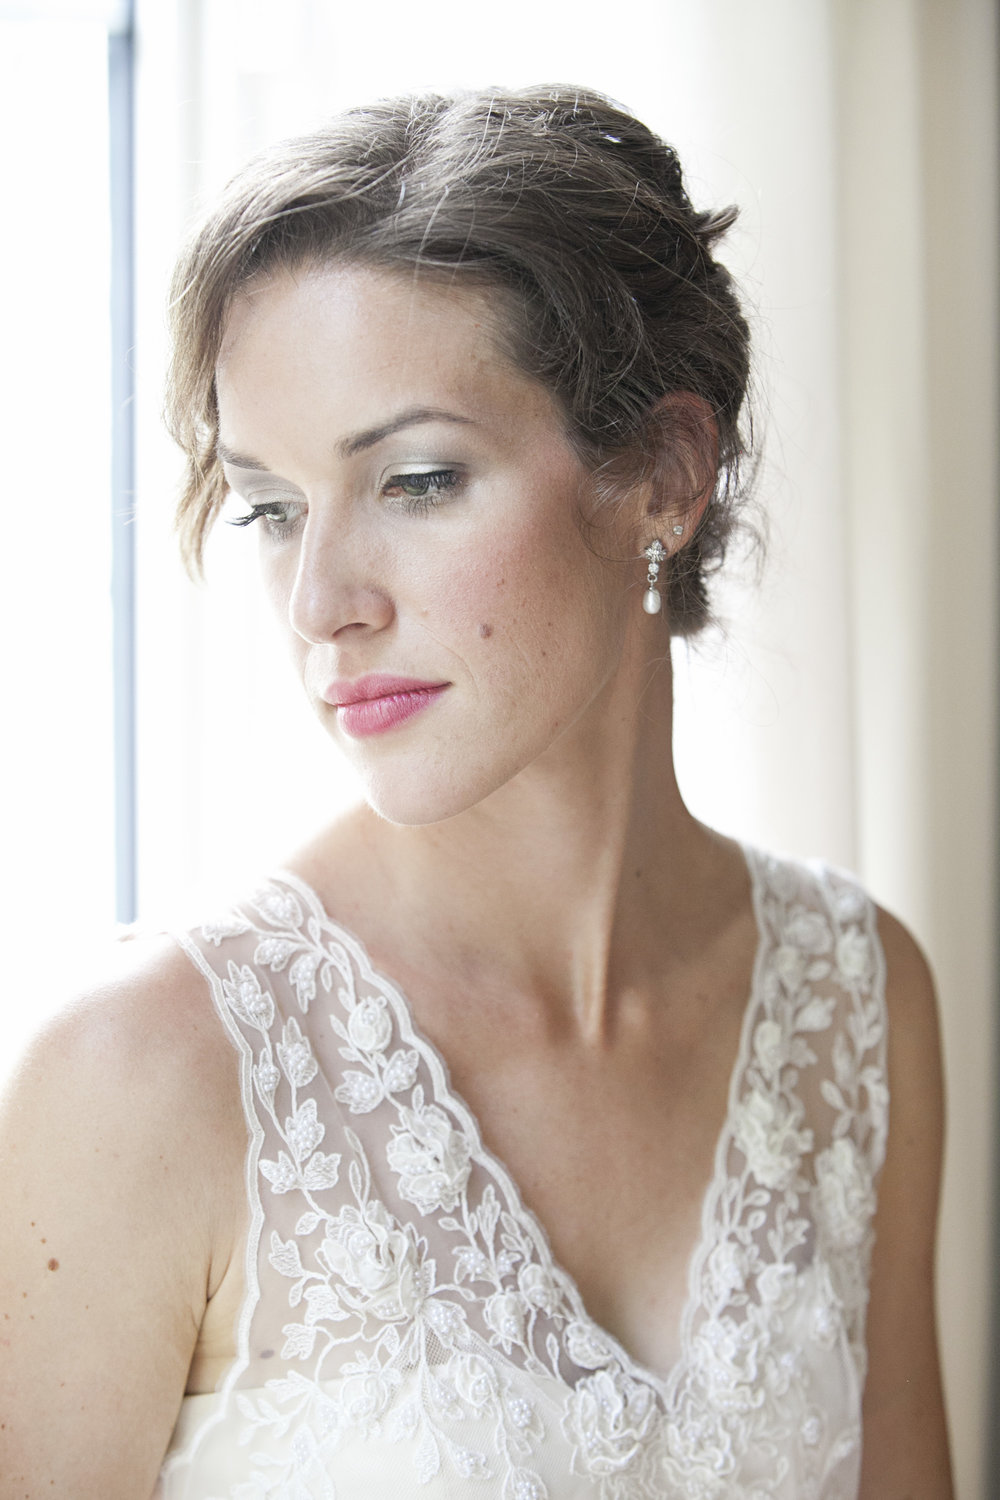 Indoor portrait of bride in lace dress